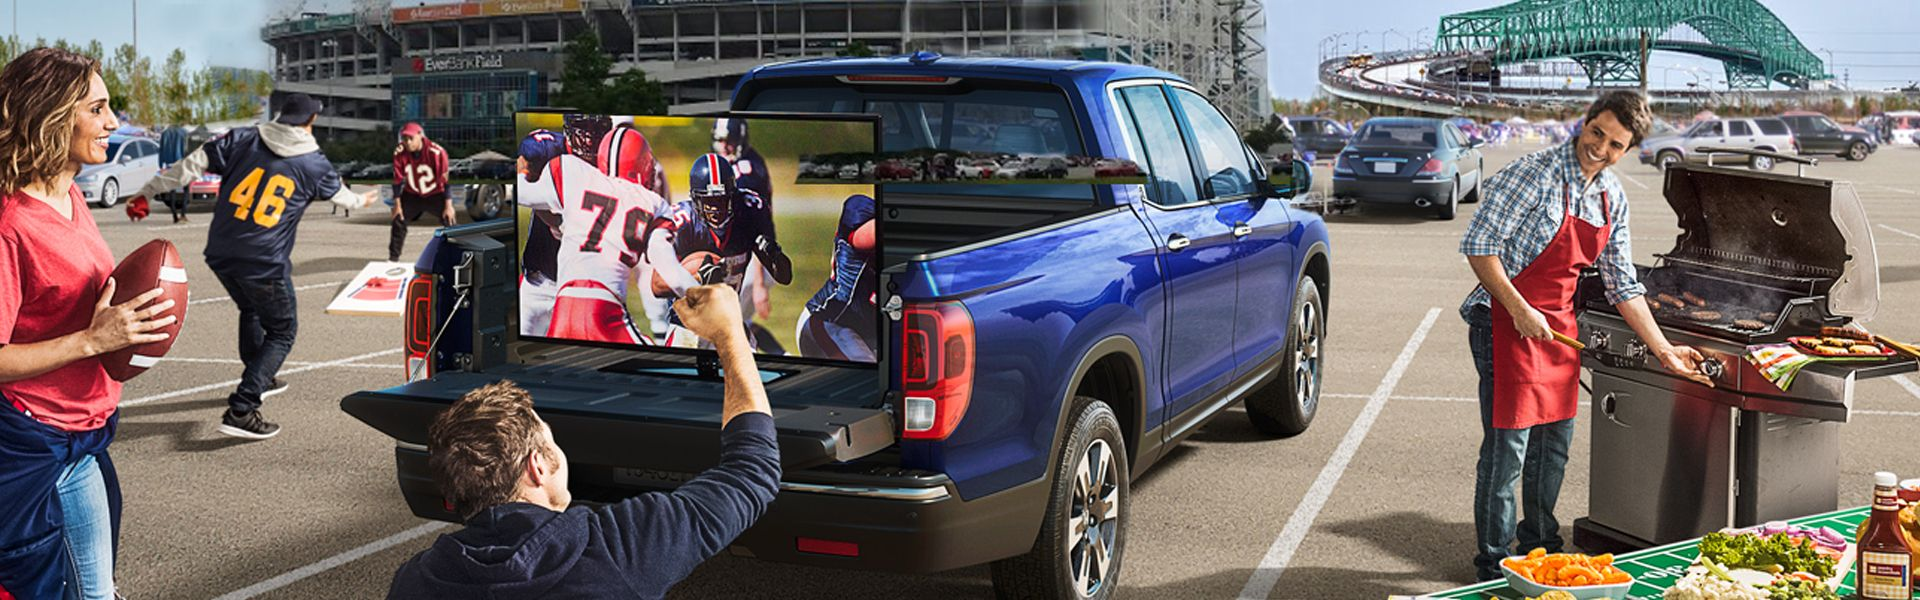 Tailgate party on the back of a blue Honda Ridgeline at Everbank Stadium in Jacksonville FL